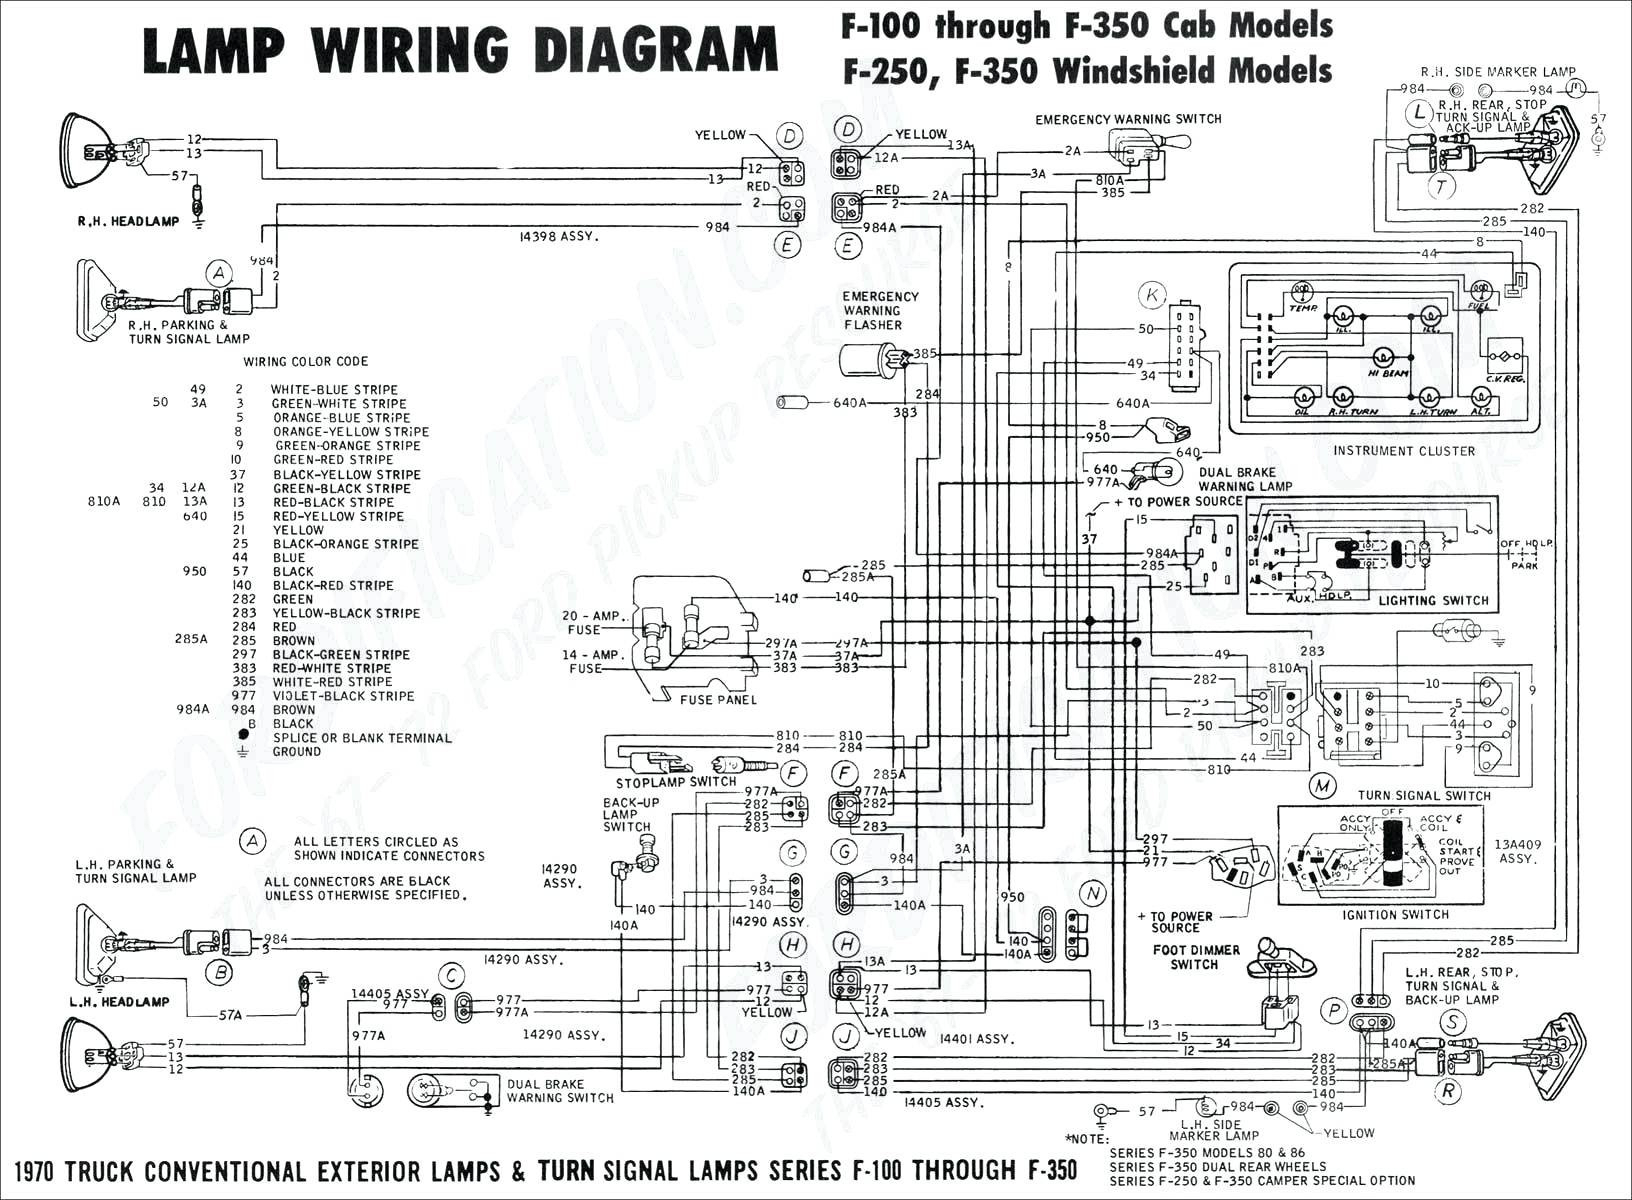 Get 2001 Ford F250 Trailer Wiring Diagram Sample - Trailer Wiring Diagram Download